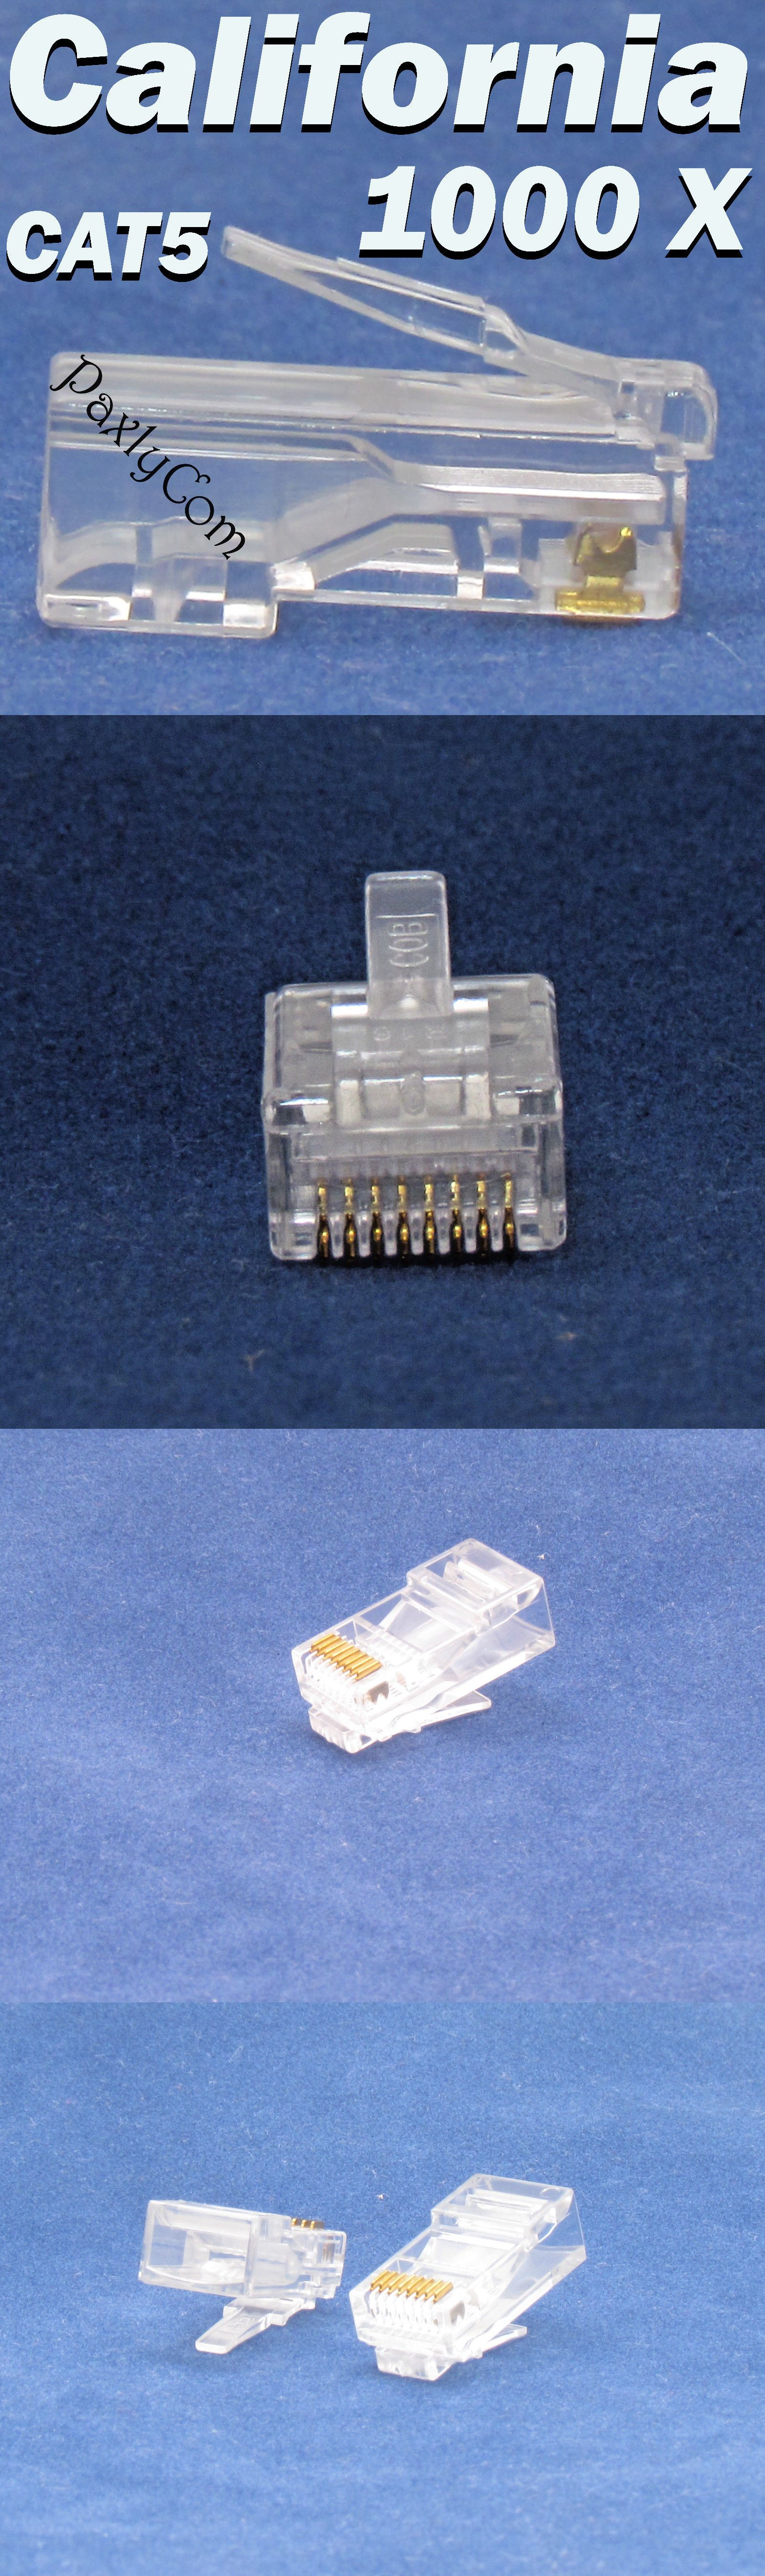 small resolution of plugs jacks and wall plates 67279 1000 x rj45 end plug cat5 cat5e modular lan connector internet ethernet cable 8p buy it now only 17 35 on ebay